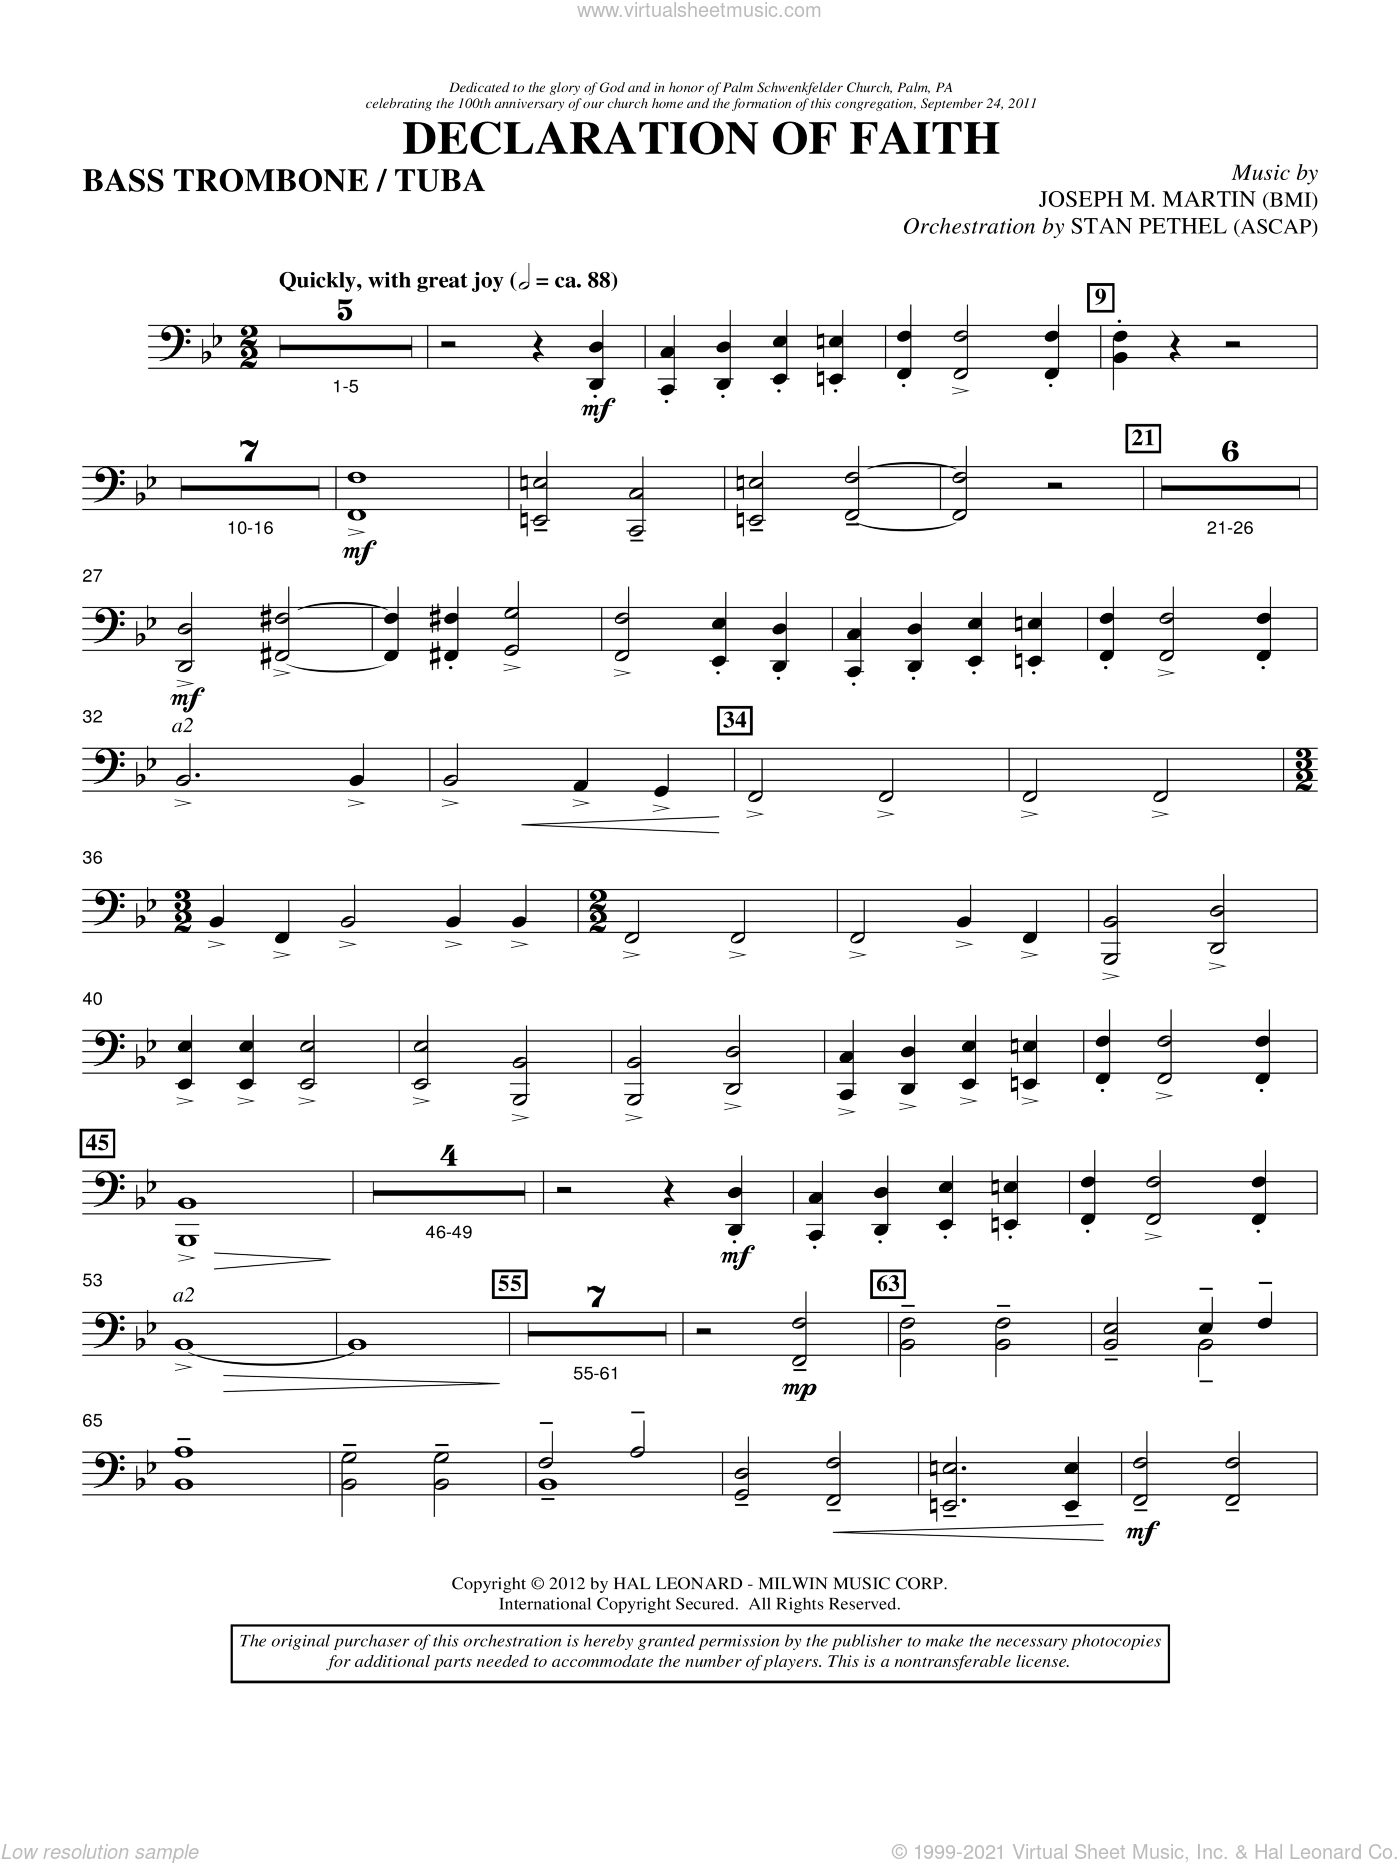 Declaration Of Faith sheet music for orchestra/band (bass trombone/tuba) by Joseph M. Martin